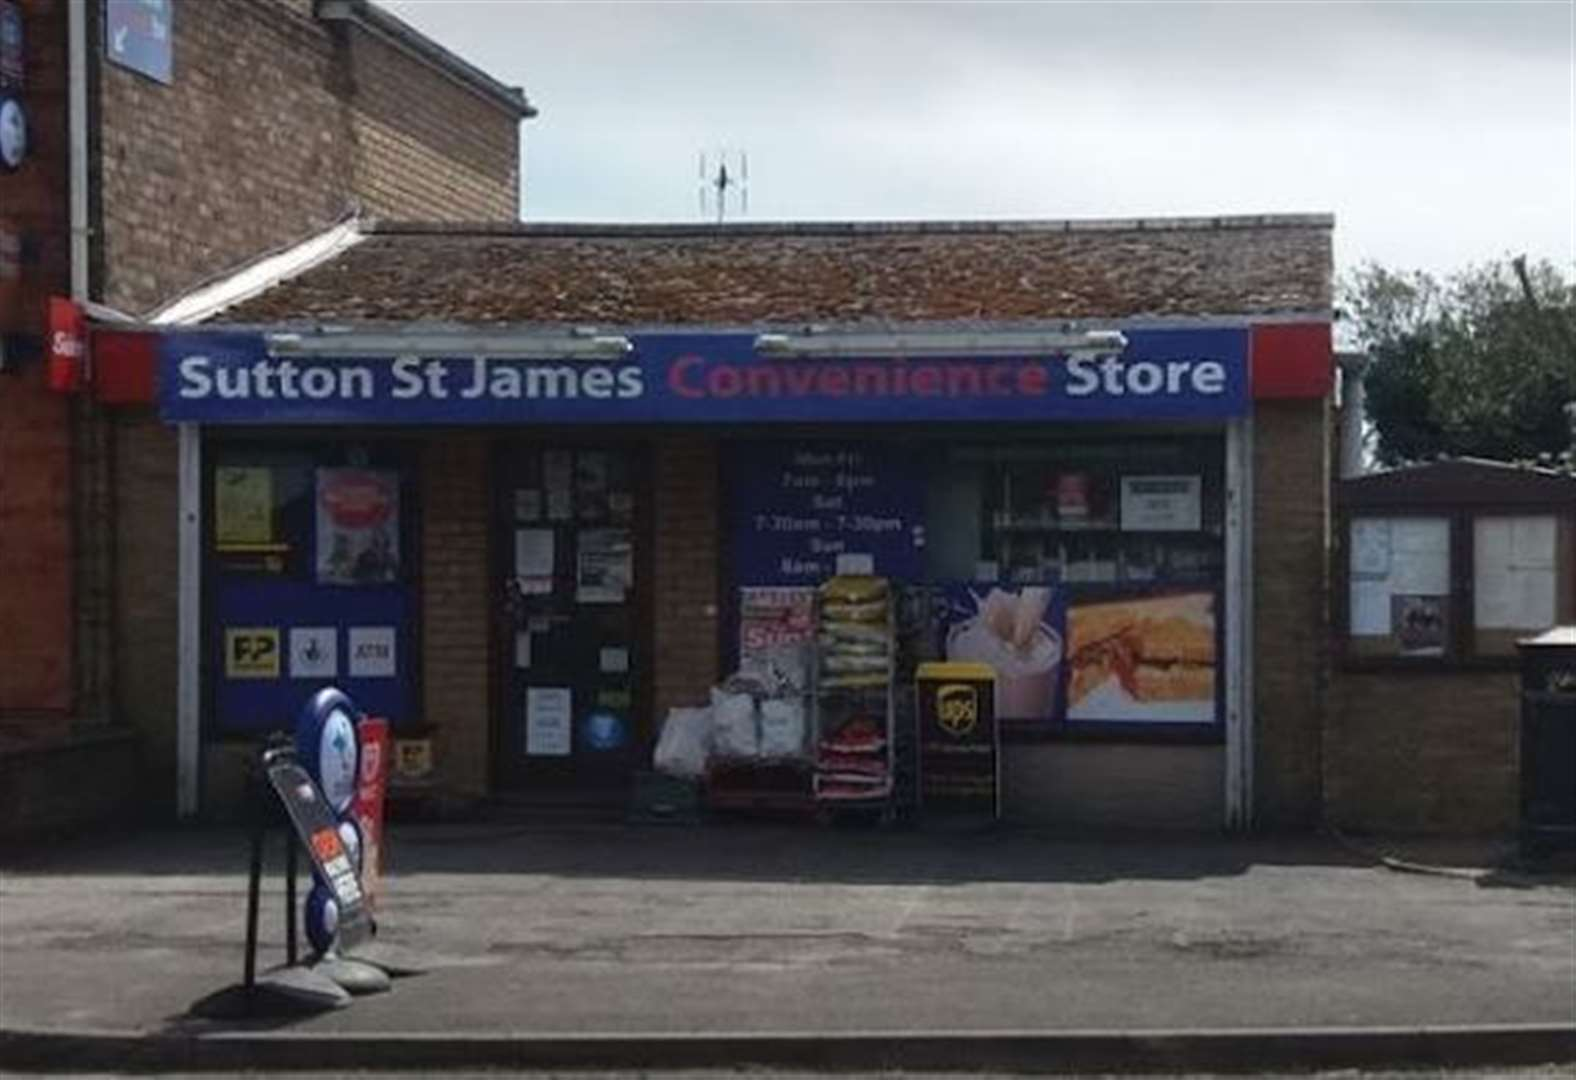 Attempted robbery at village shop